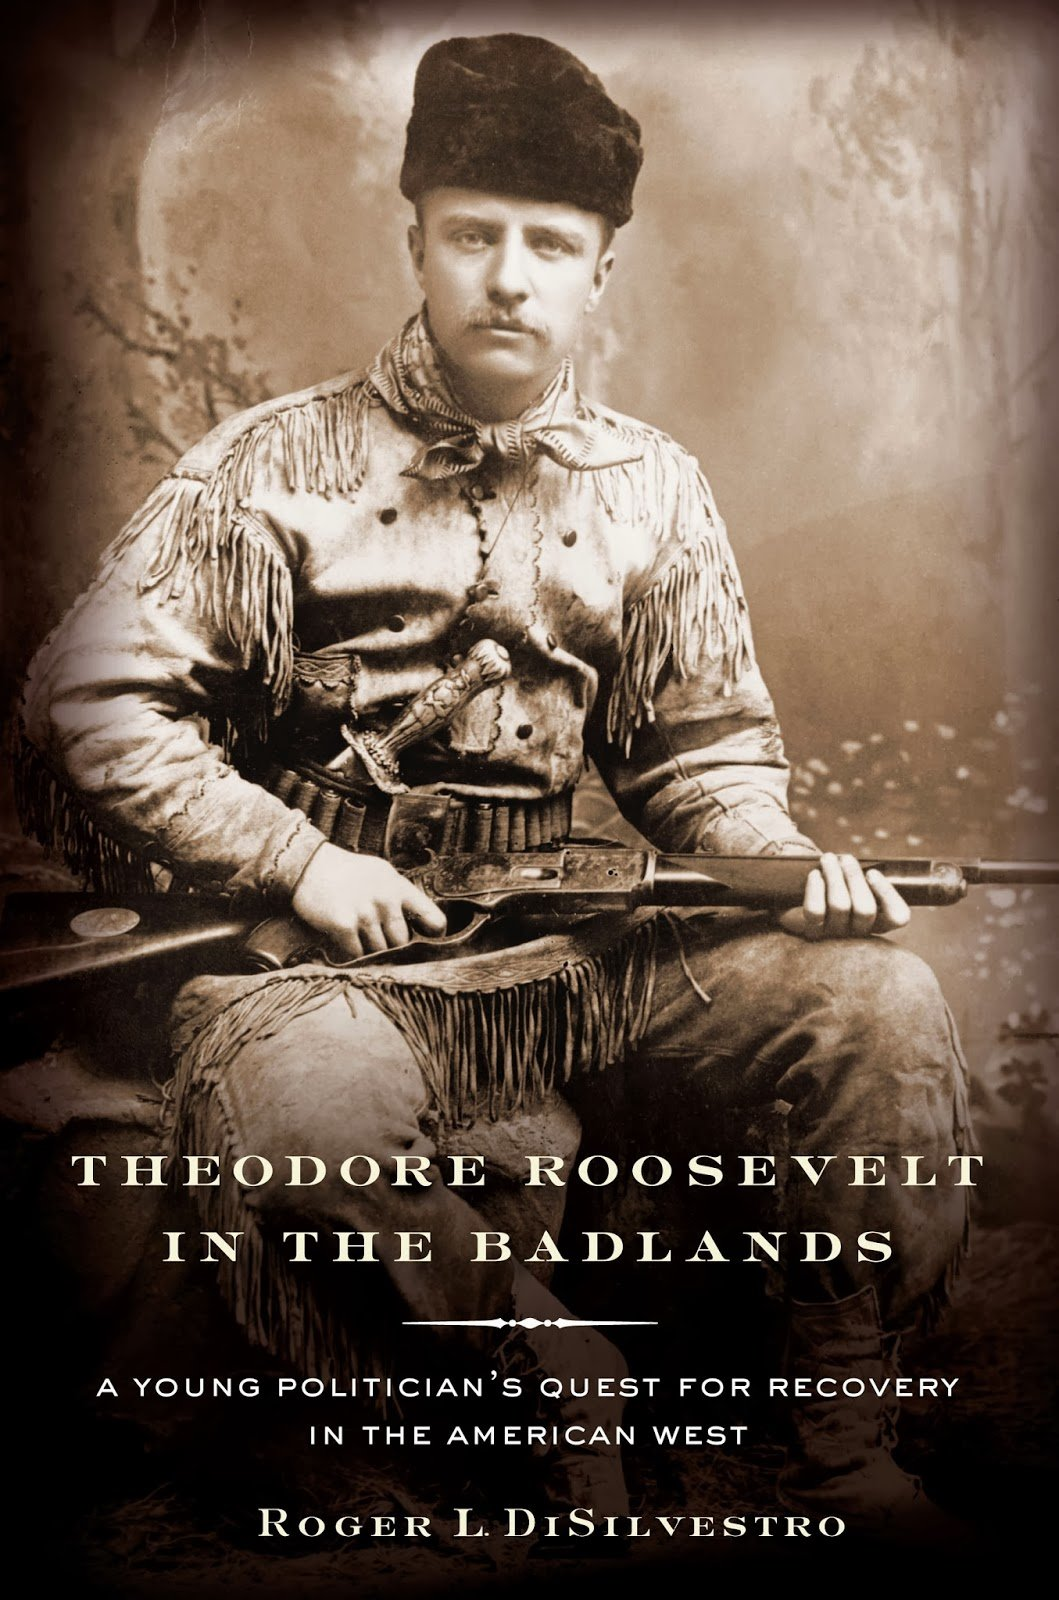 the life of theodore roosevelt as a hunter Theodore roosevelt became the 26th us president (1901-1909) after the   roosevelt enjoyed big game hunting, and toy makers created the teddy bear  after a  health did not prevent him from remaining active until the very end of  his life.